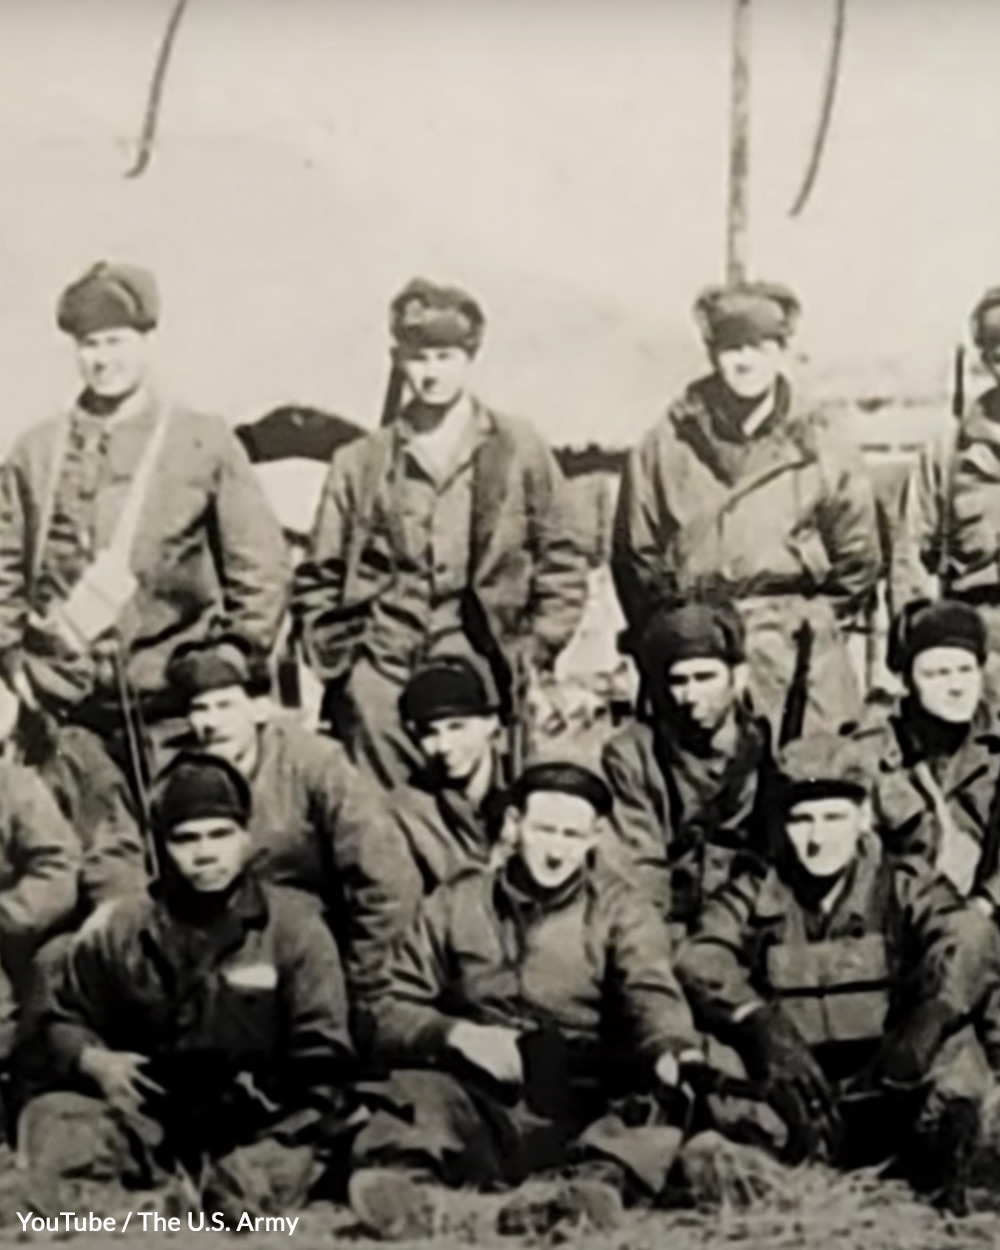 Puckett, Jr., as a newly minted 2nd Lt. was sent to serve with the 8th Army in Japan.